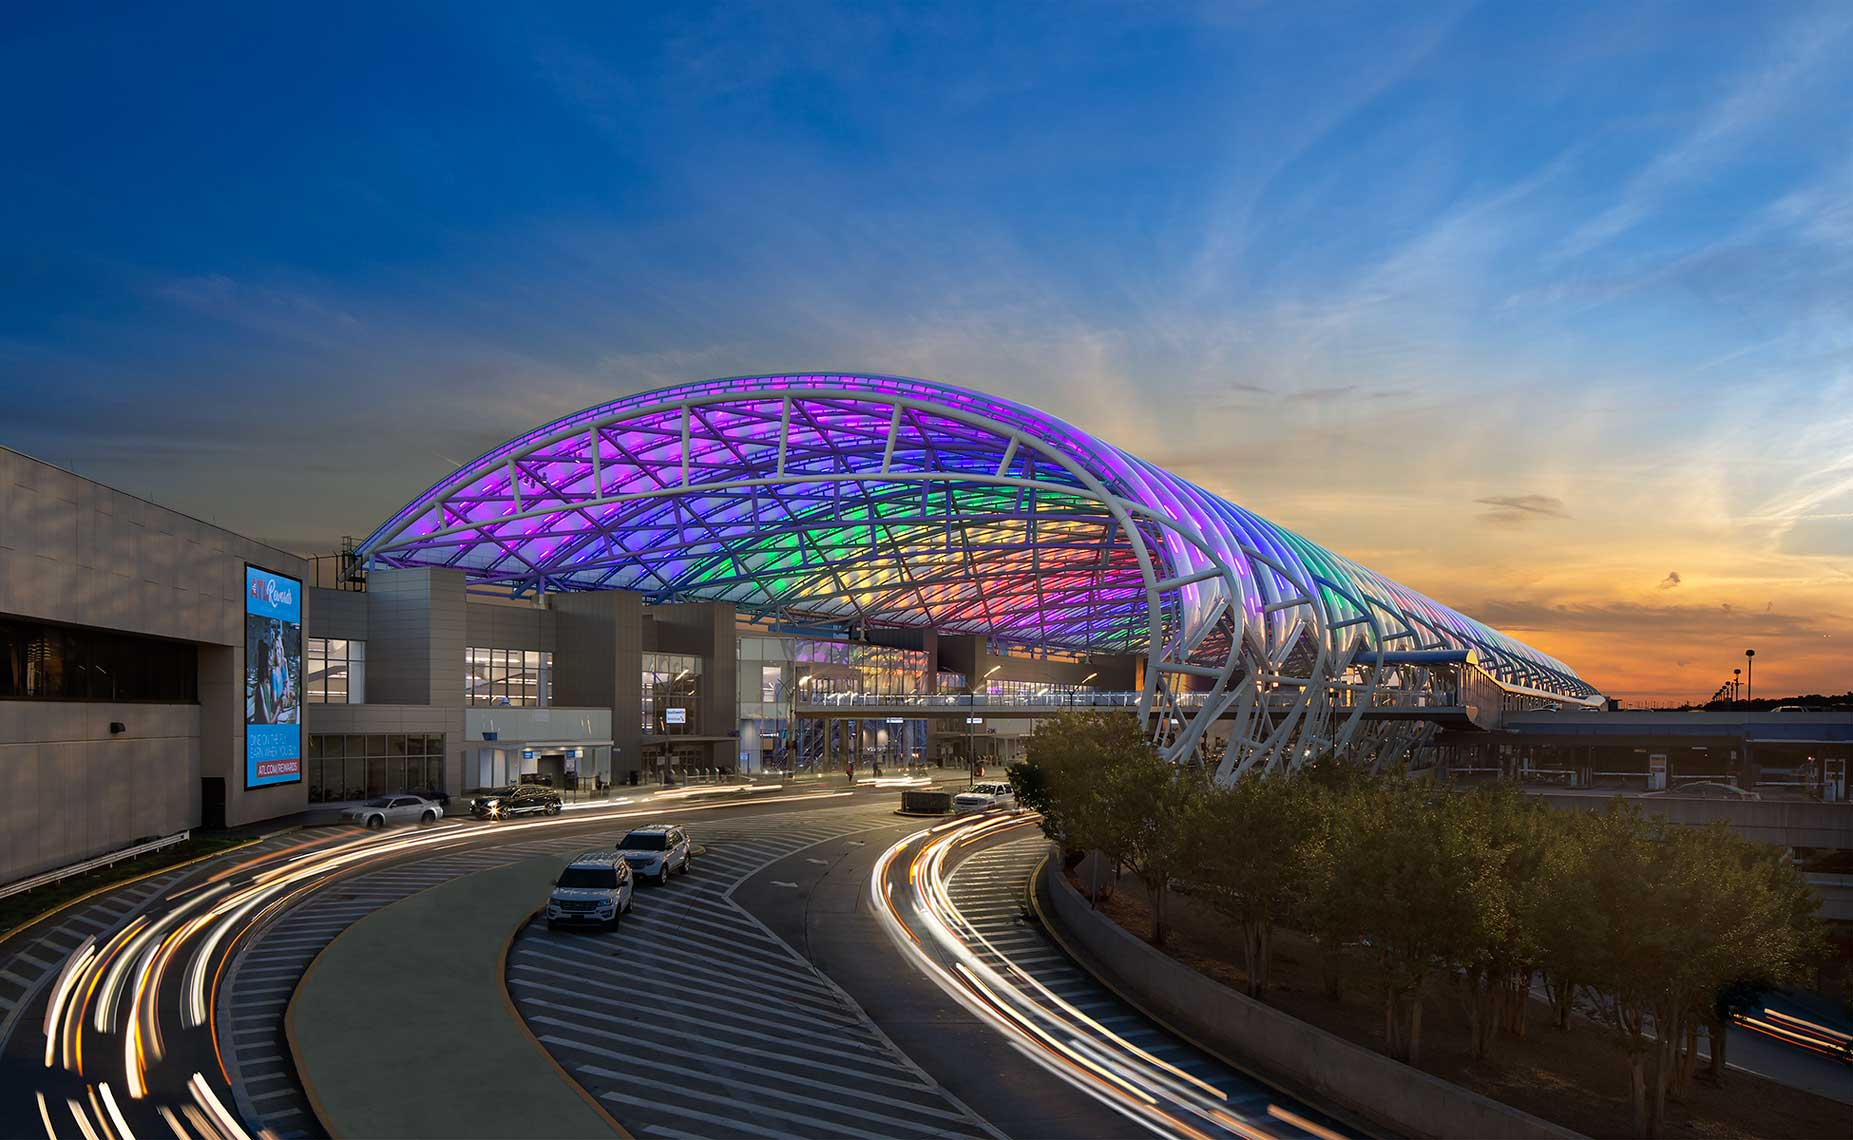 The canopy glows in a rainbow of colors at dusk at Hartsfield Jackson Atlanta International Airport